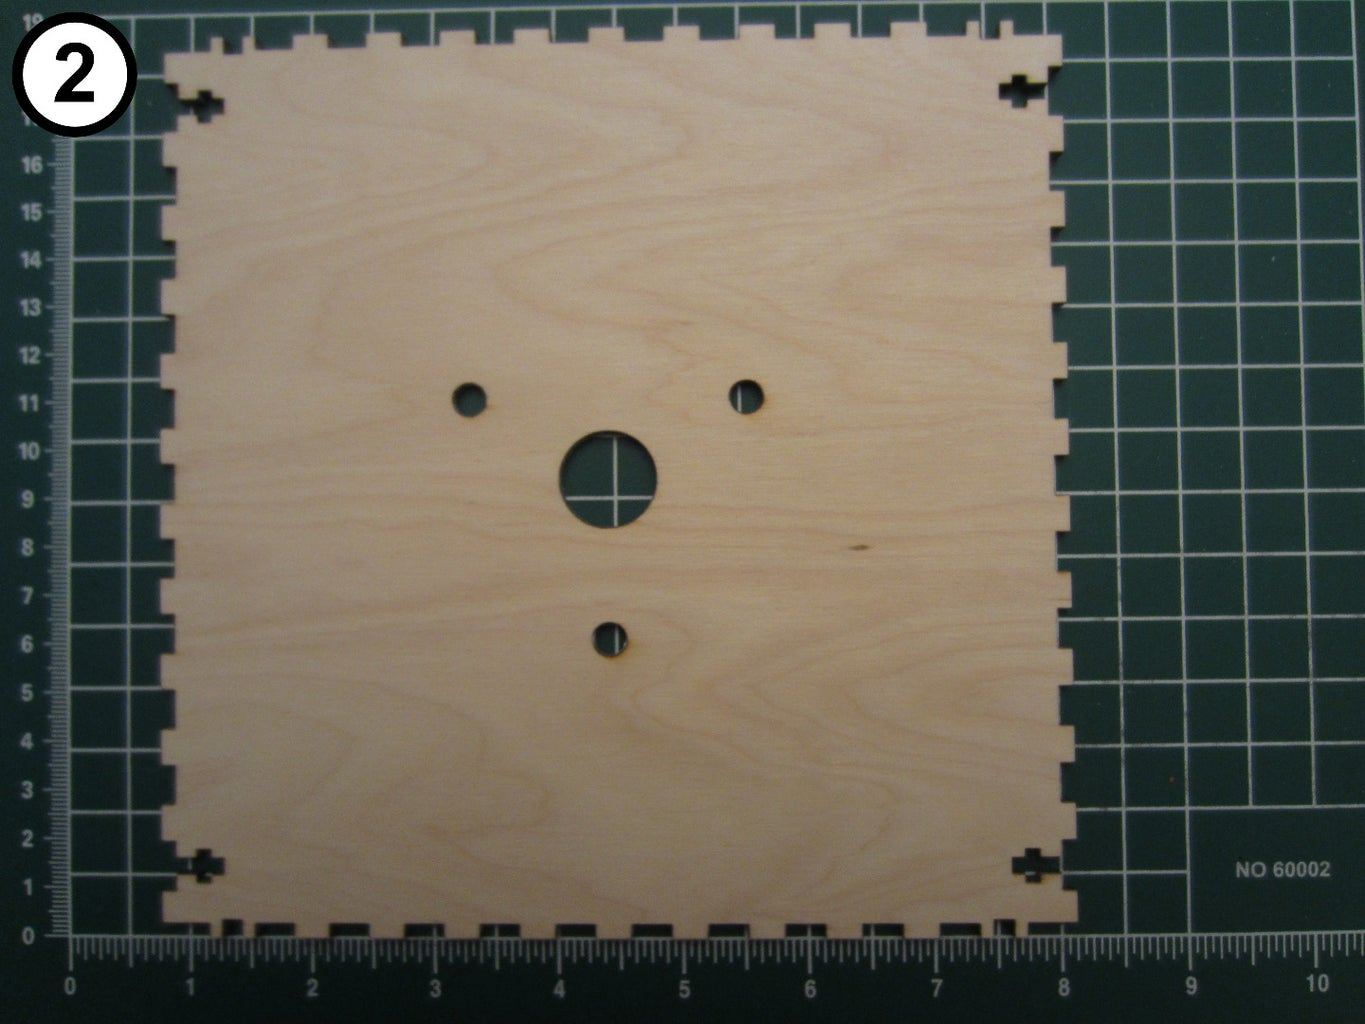 Attach the Tower Lamp to the Top Panel